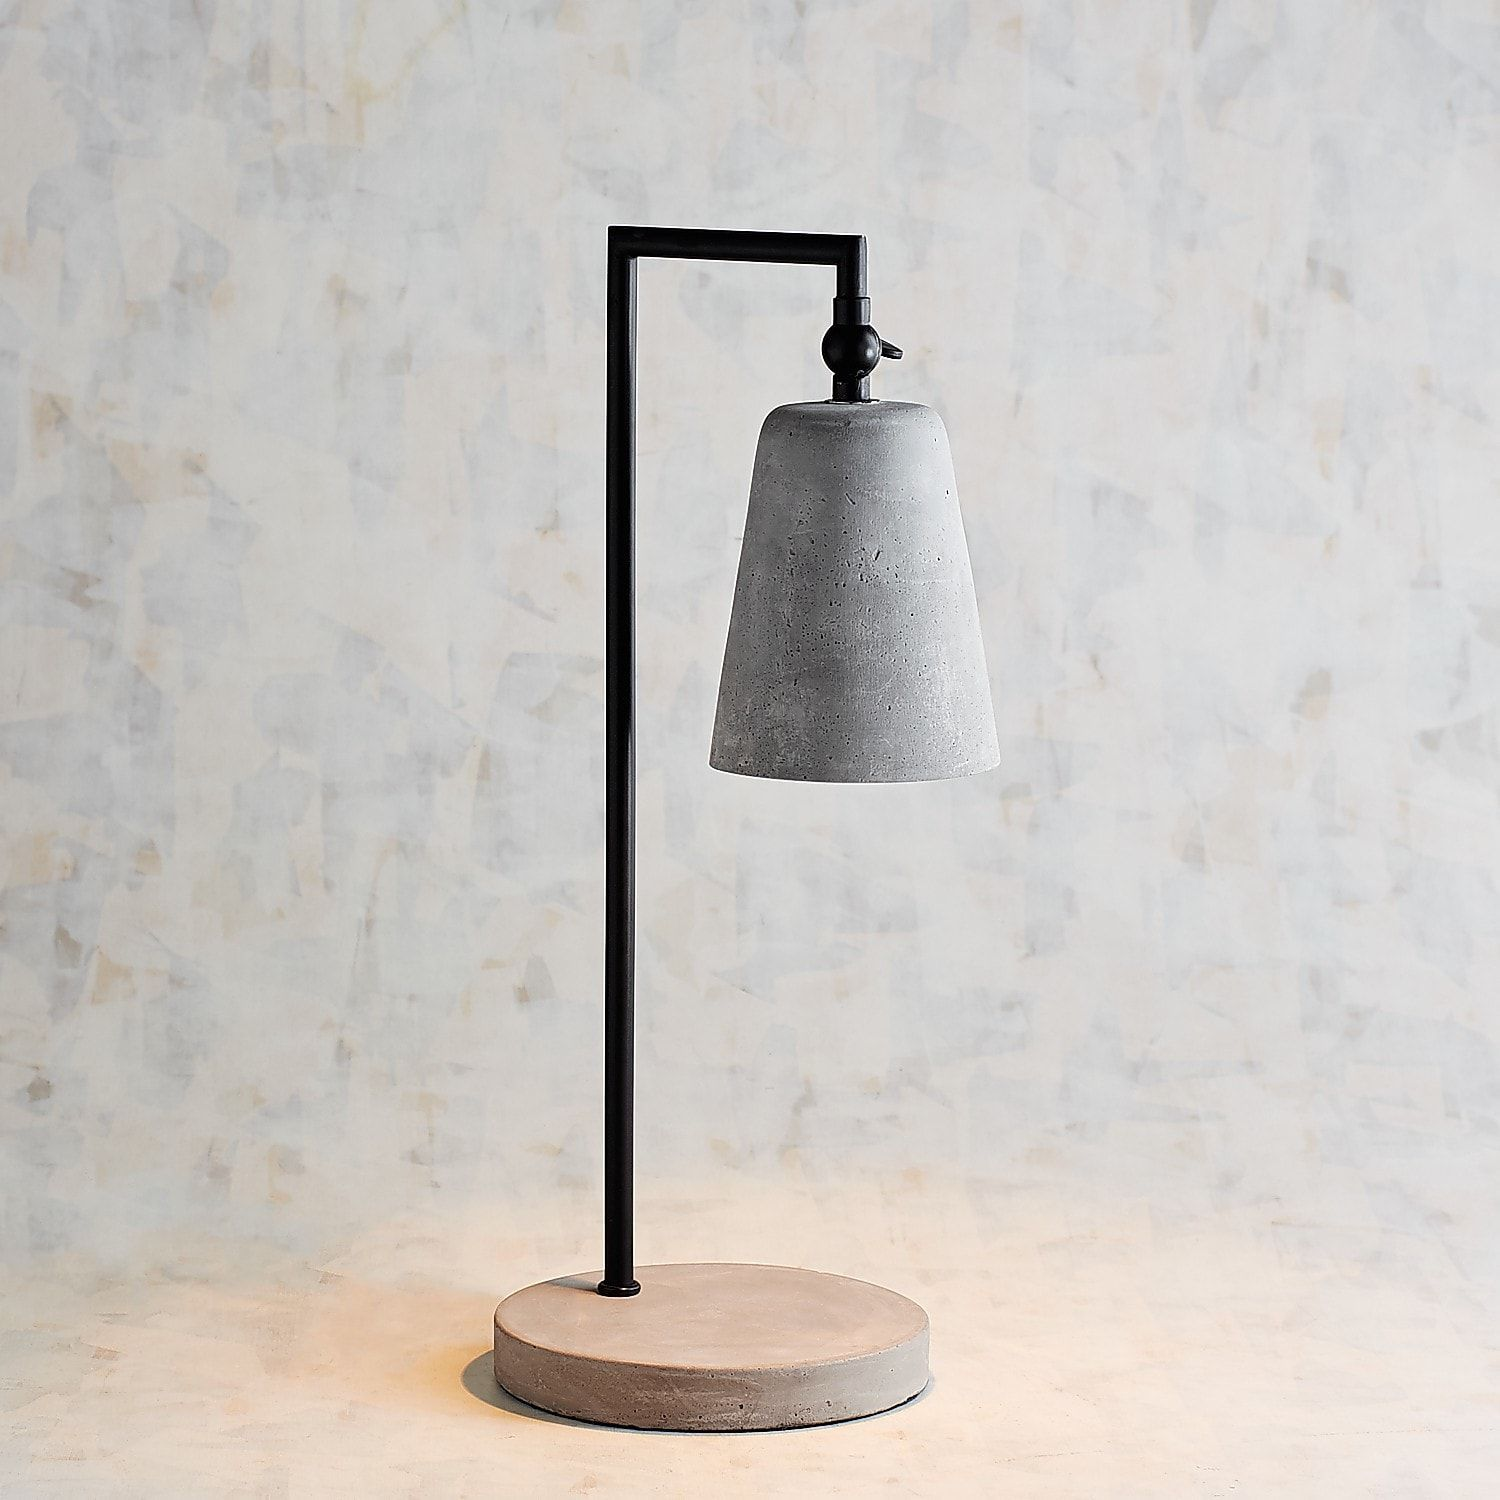 Magnolia Home Small Cement & Metal Desk Lamp in 2019 | Products ...